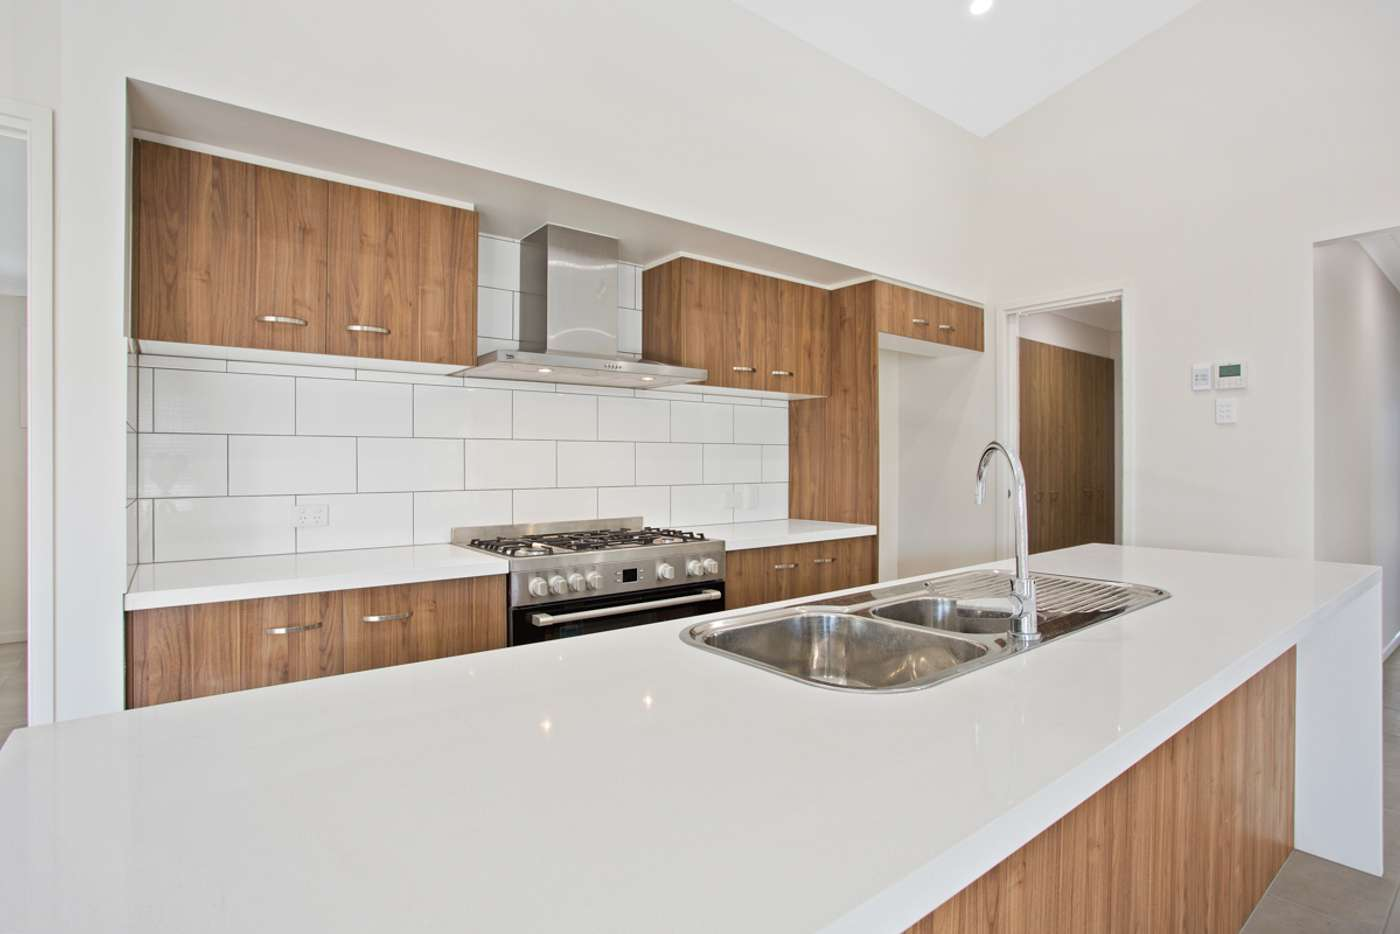 Sixth view of Homely house listing, 9 Brindabella Street, Newport QLD 4020